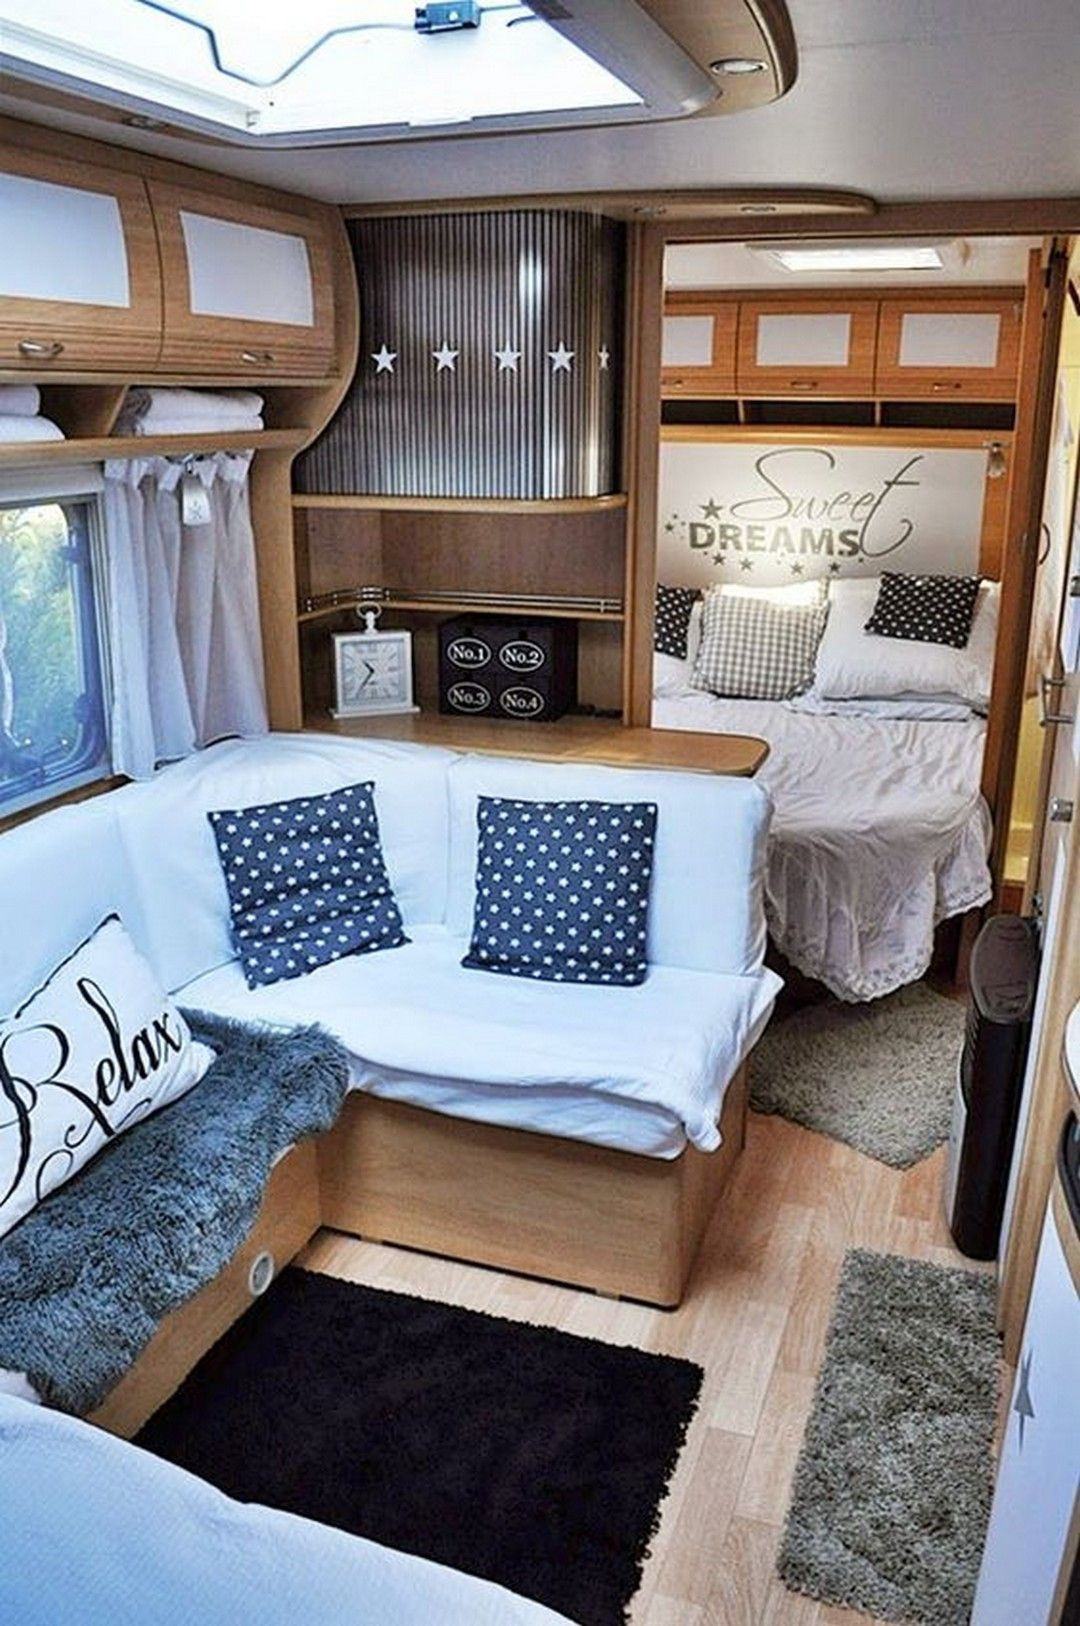 Coolest Home Camper Sprinter Conversion